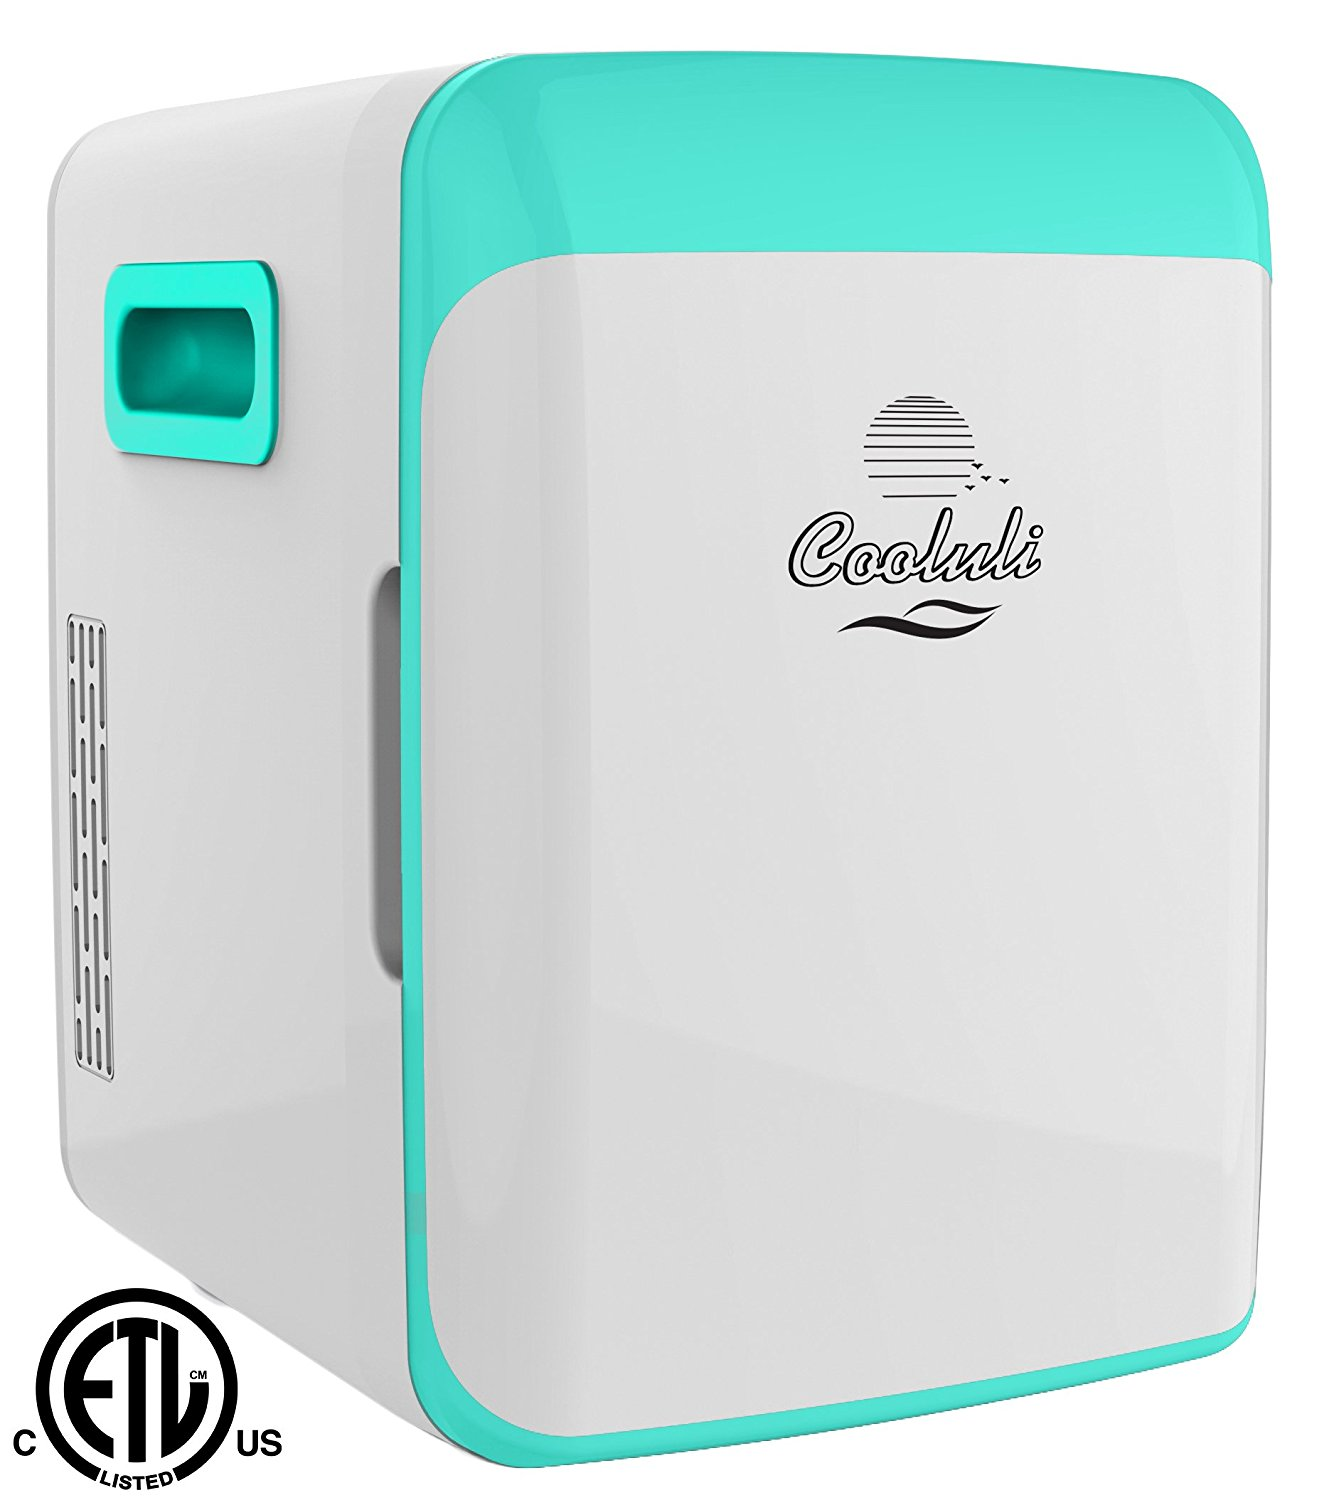 Cooluli Cooler and Warmer best mini fridge